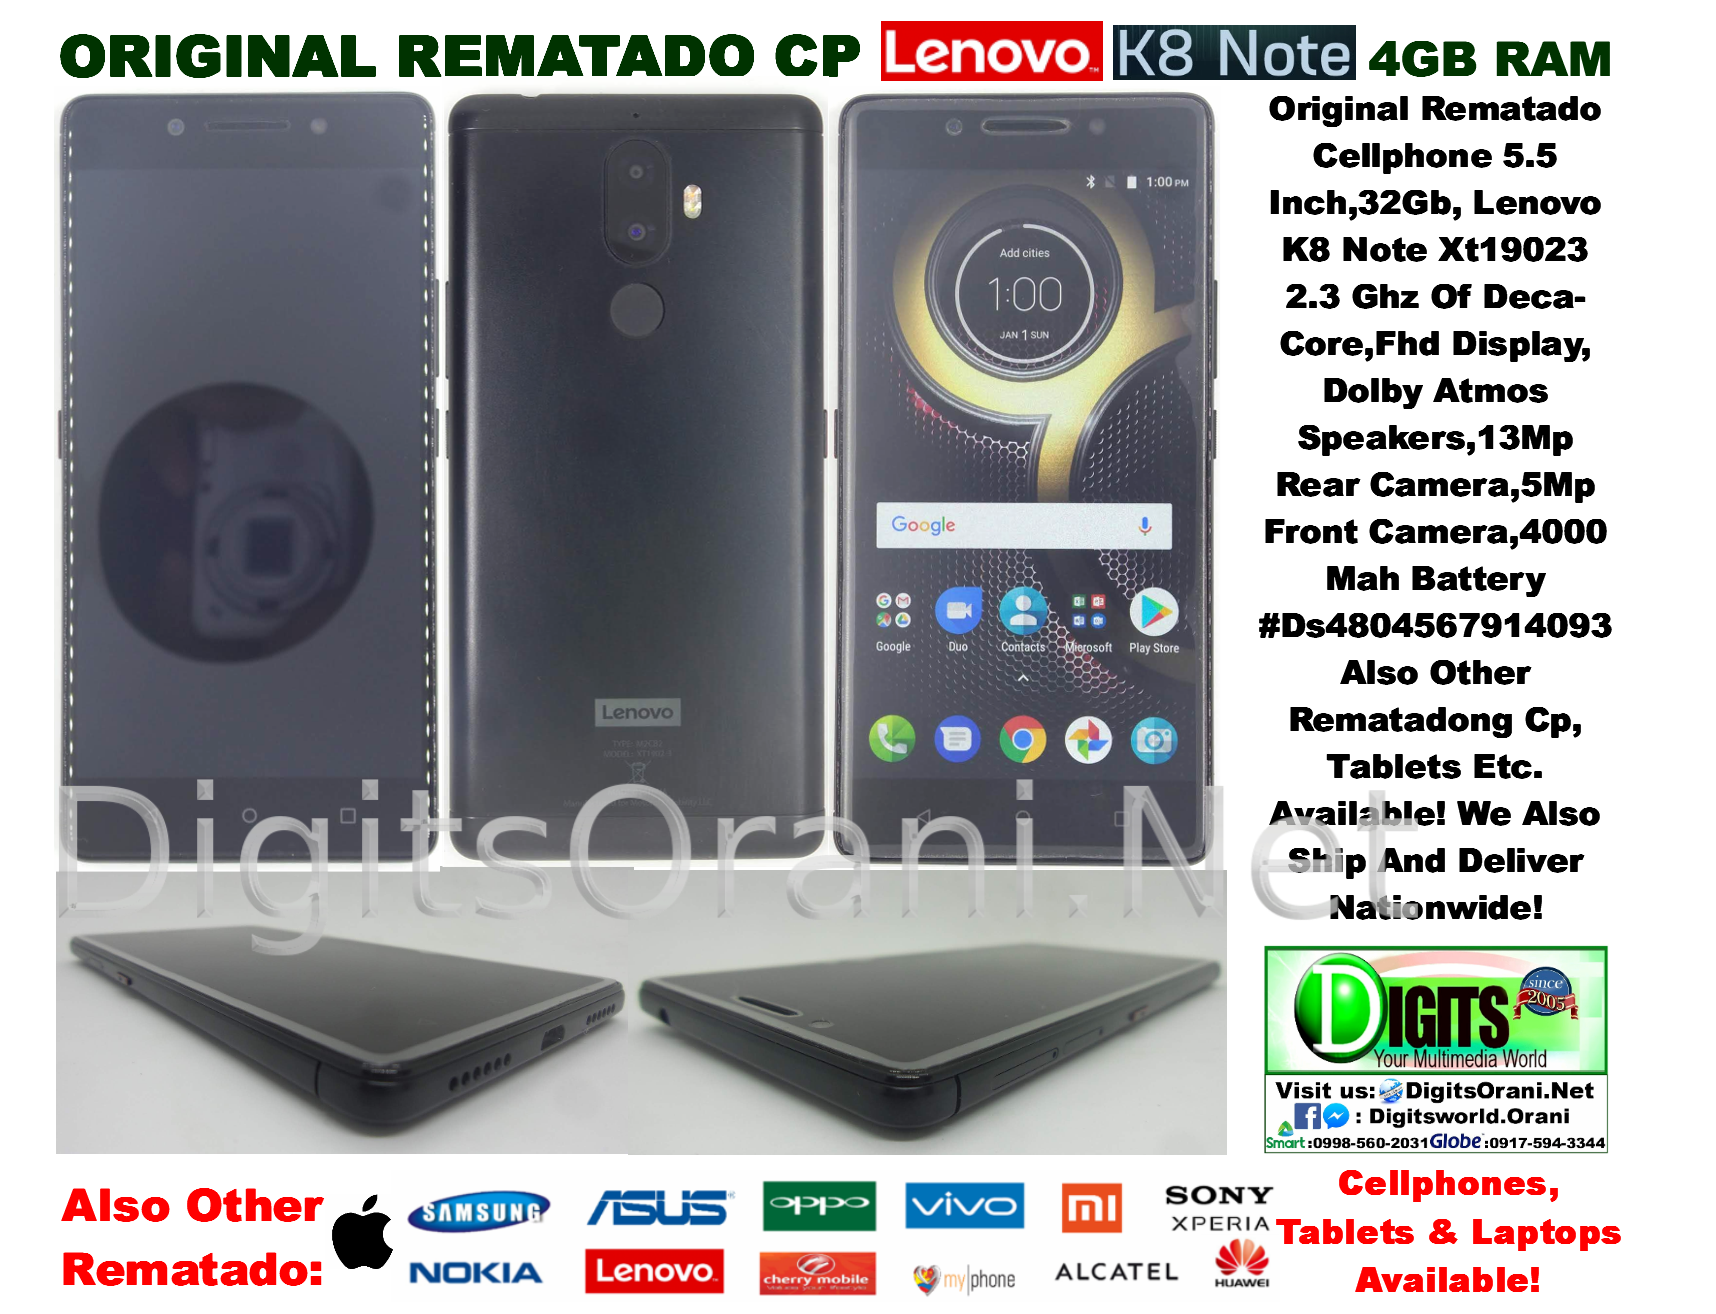 Original Rematado Cellphone 5 5 Inch,32Gb,4Gb Ram Lenovo K8 Note Xt19023  2 3 Ghz Of Deca-Core,Fhd Display,Dolby Atmos Speakers,13Mp Rear Camera,5Mp